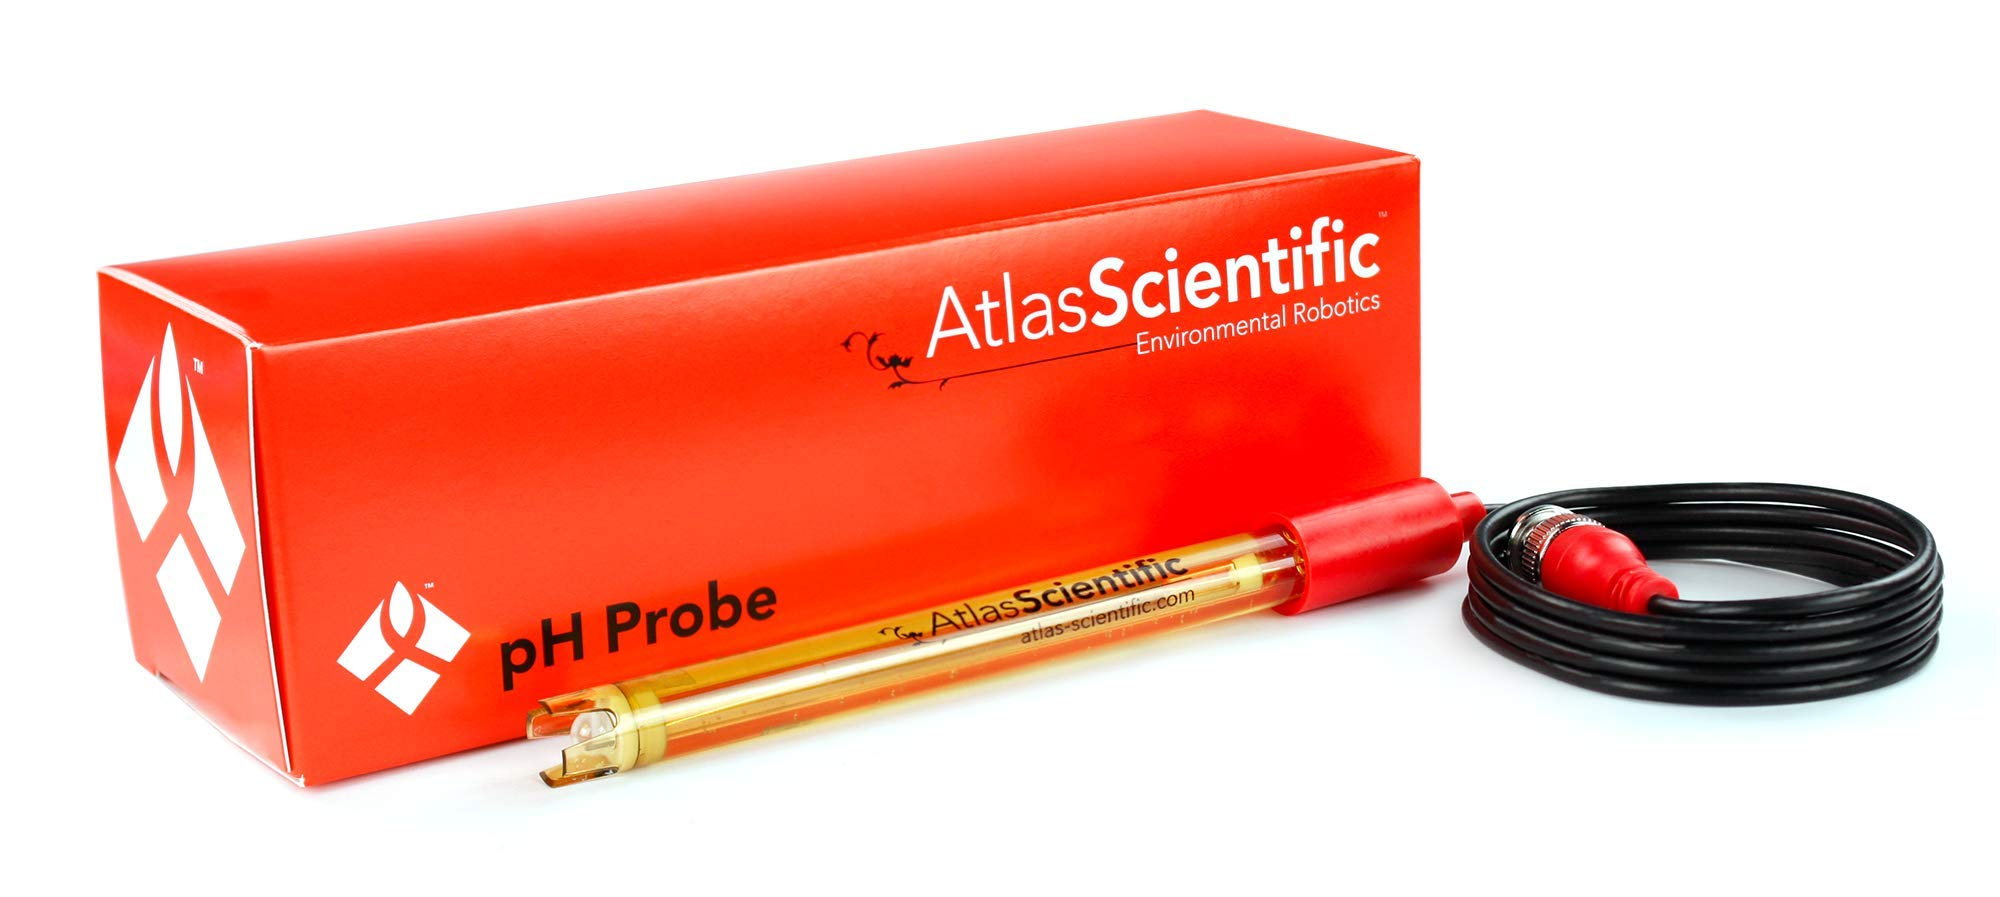 Atlas Scientific pH Probe 0 - 14 pH